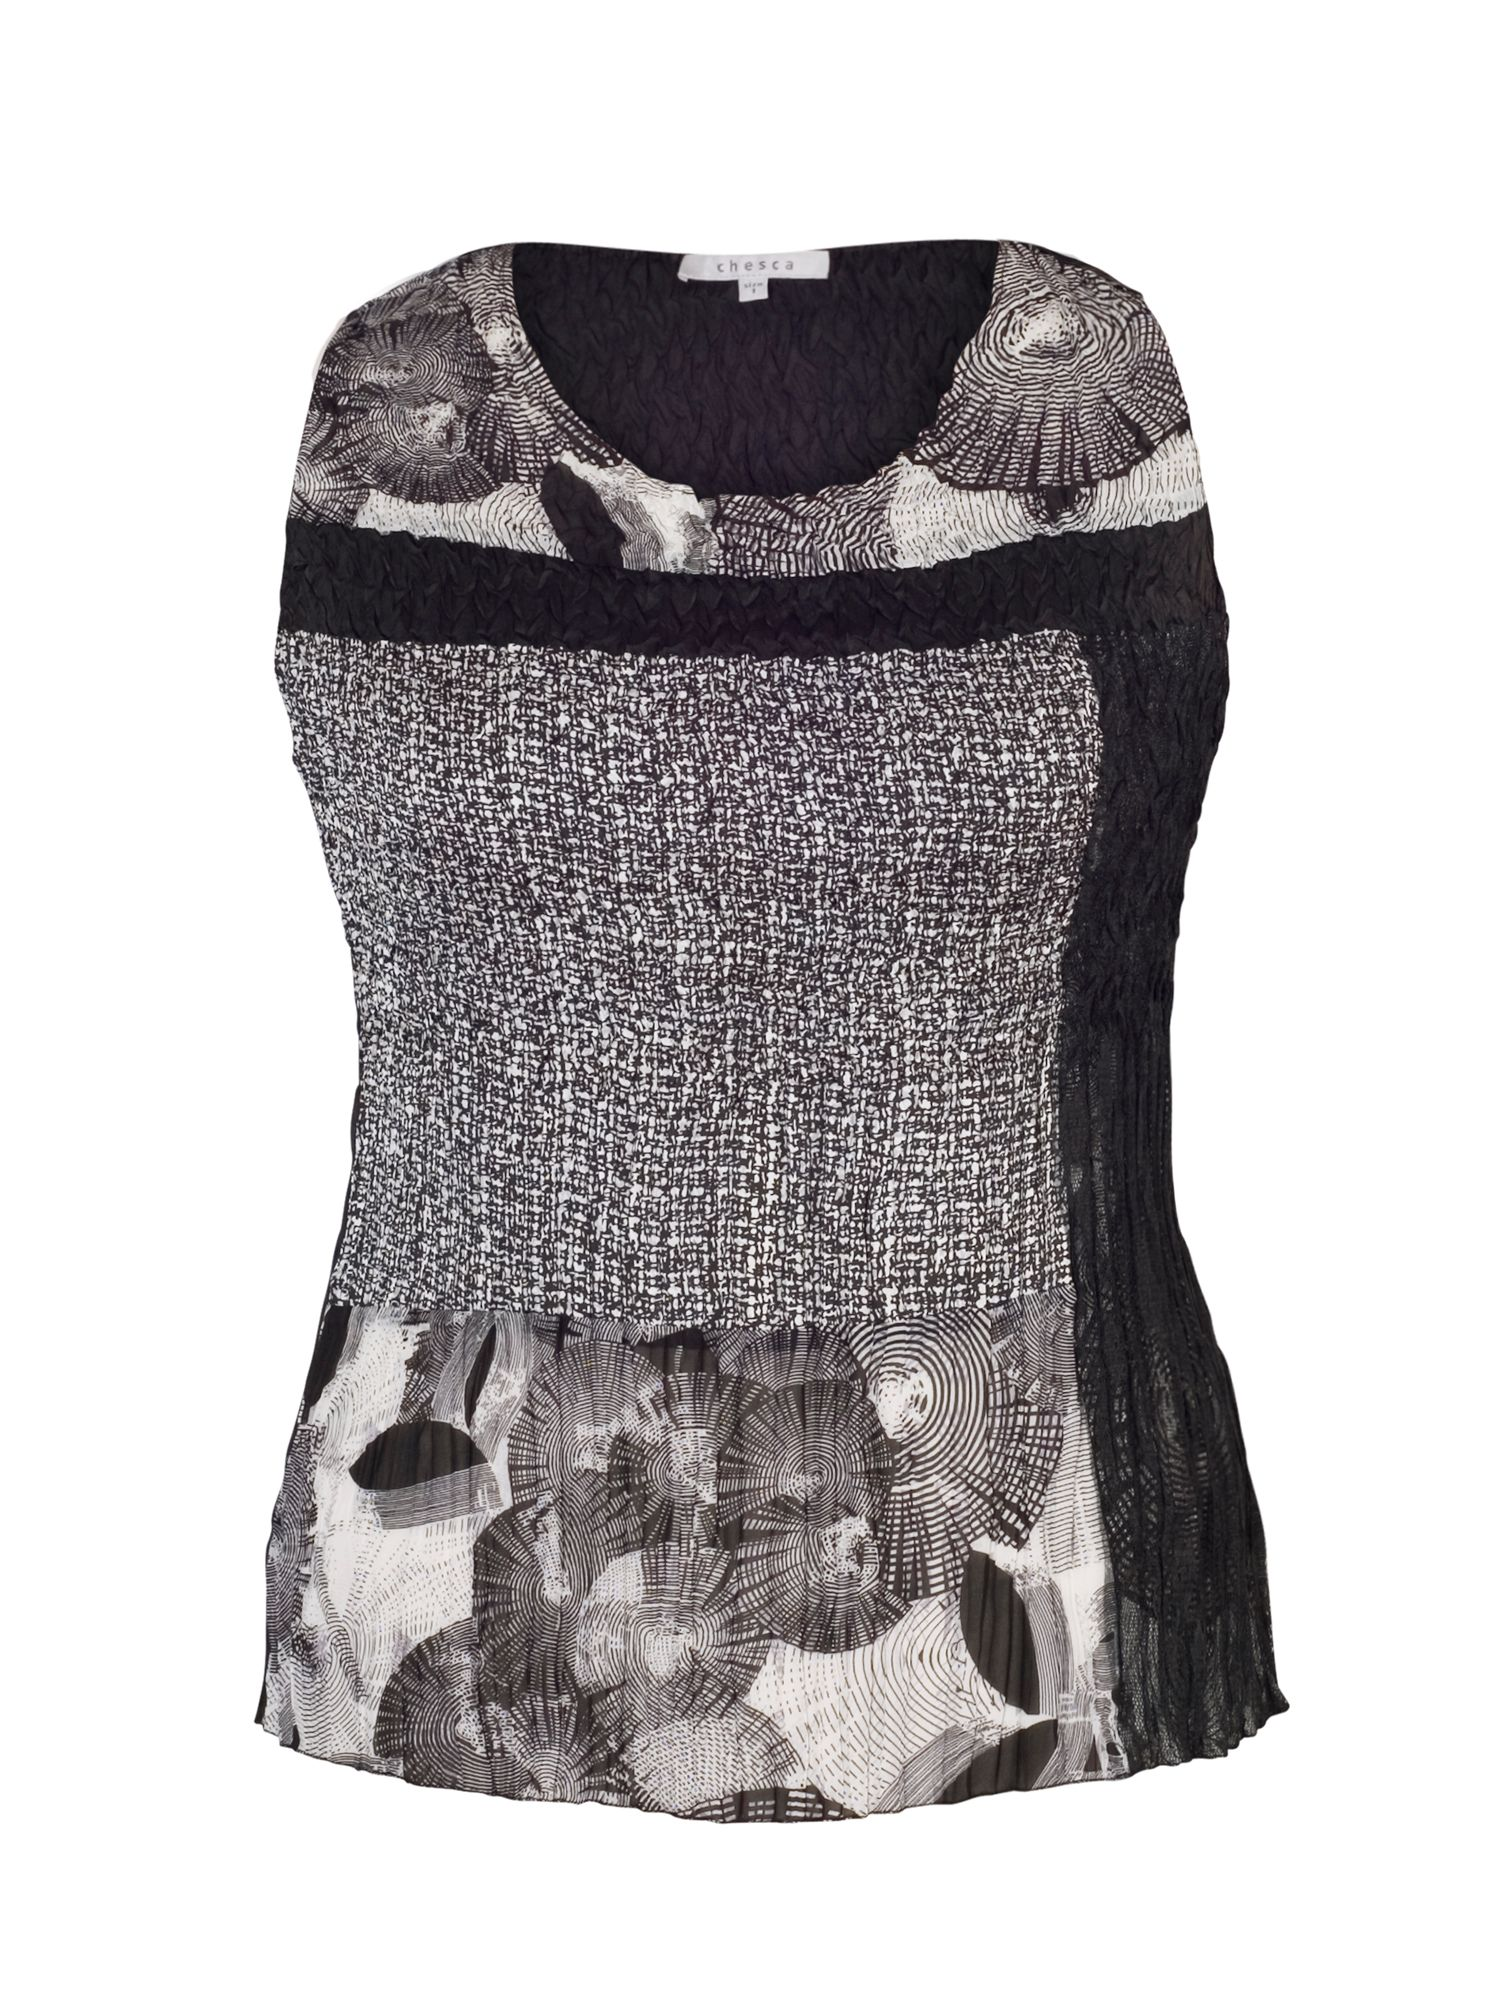 Chesca Plus Size Black/Ivory Patchwork Print Camisole, Black & White